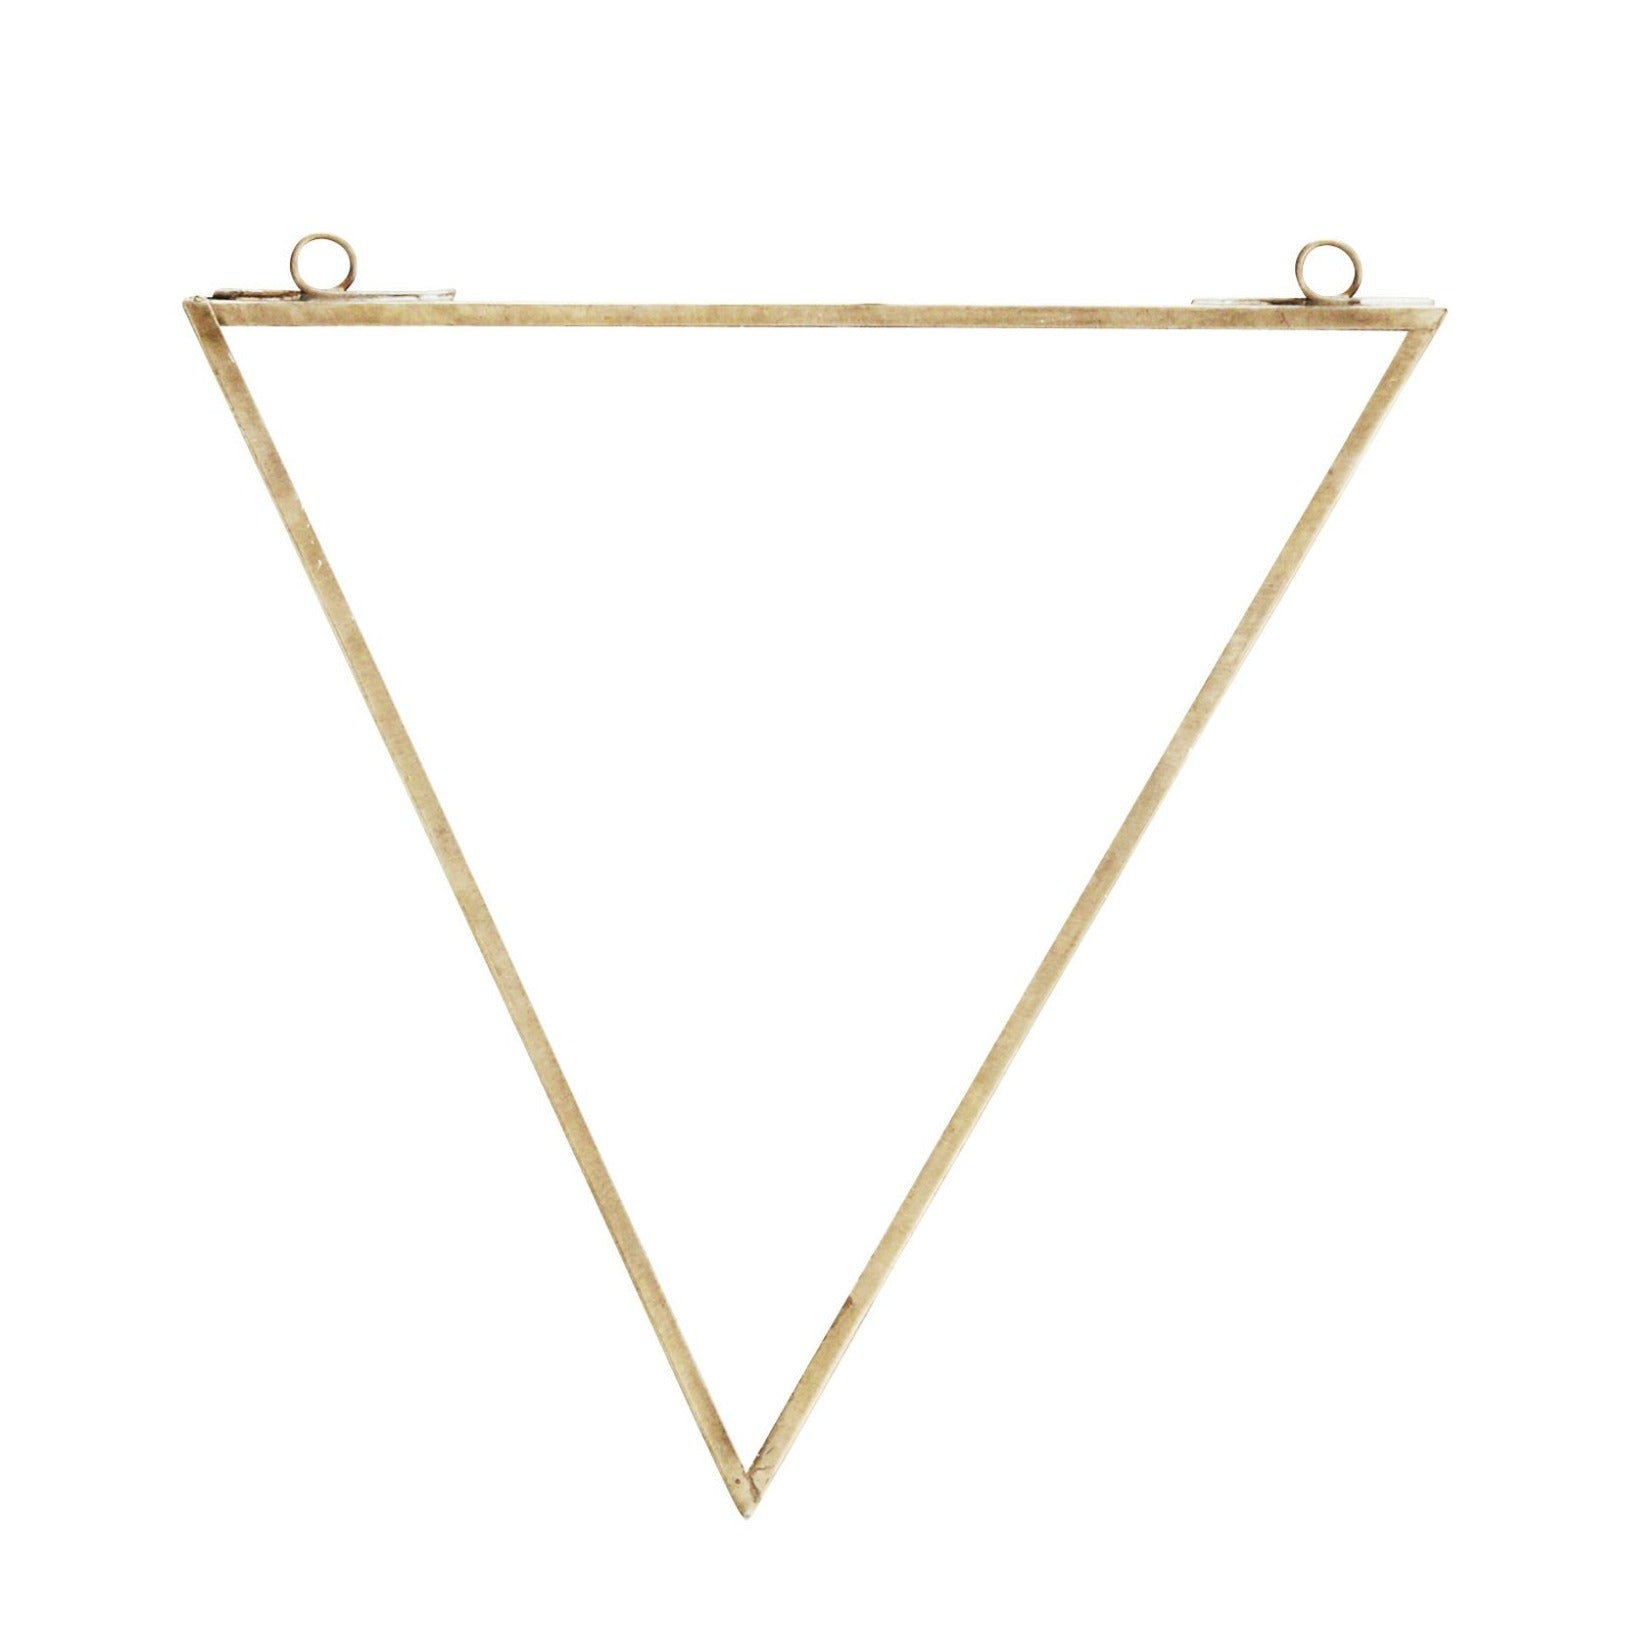 Antique Brass Triangle Mirror